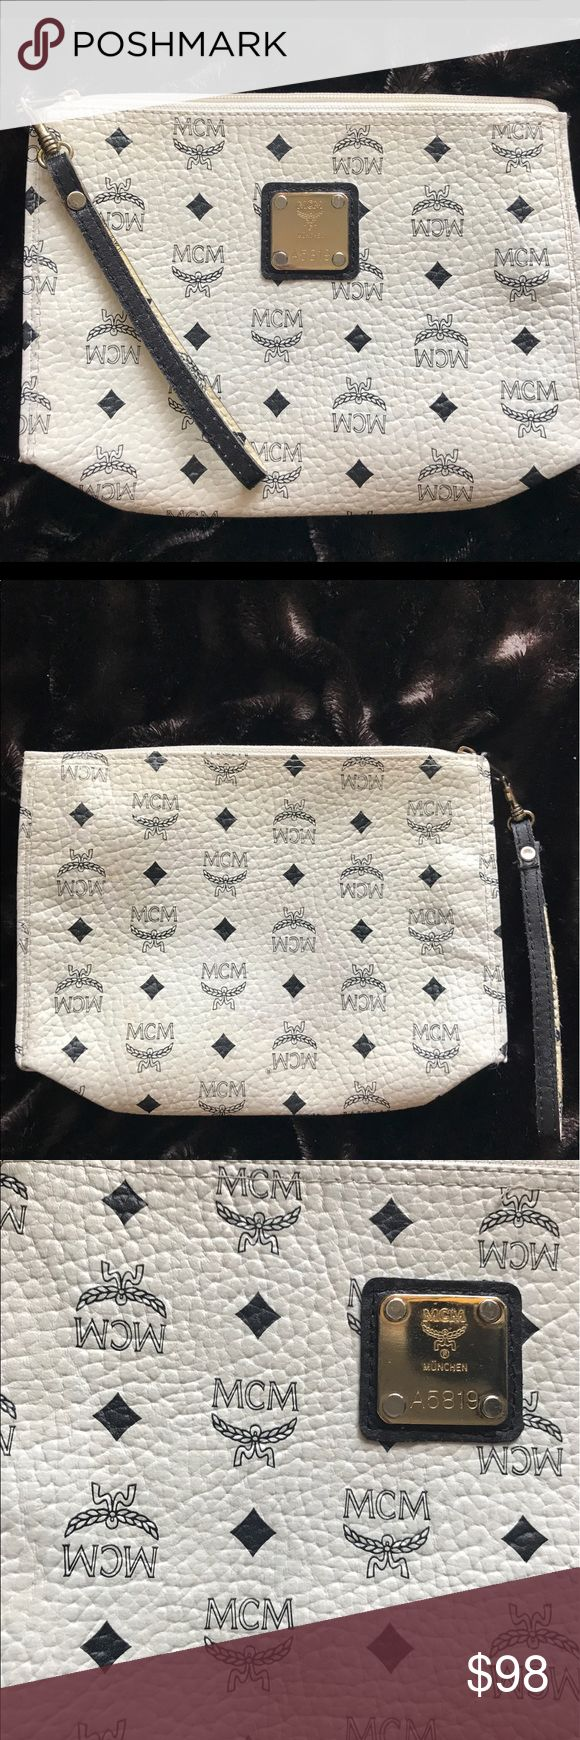 """MCM White & Navy Blue Clutch / Wristlet  💙☁️ Vintage MCM clutch! Amazing condition, from a vintage couture collector! The inside was redone to perfection and tag is not attached anymore. Perfect condition & strong zipped with adjustable (unclip) the strap for wrist or arm. Perfect for summer to spring / day to night / Casual to dressy! Will make Less $ on Ⓜ️ercari, just ask will make $80 😉 (only saying """"gucci"""" for exposure) Gucci Bags Clutches & Wristlets"""